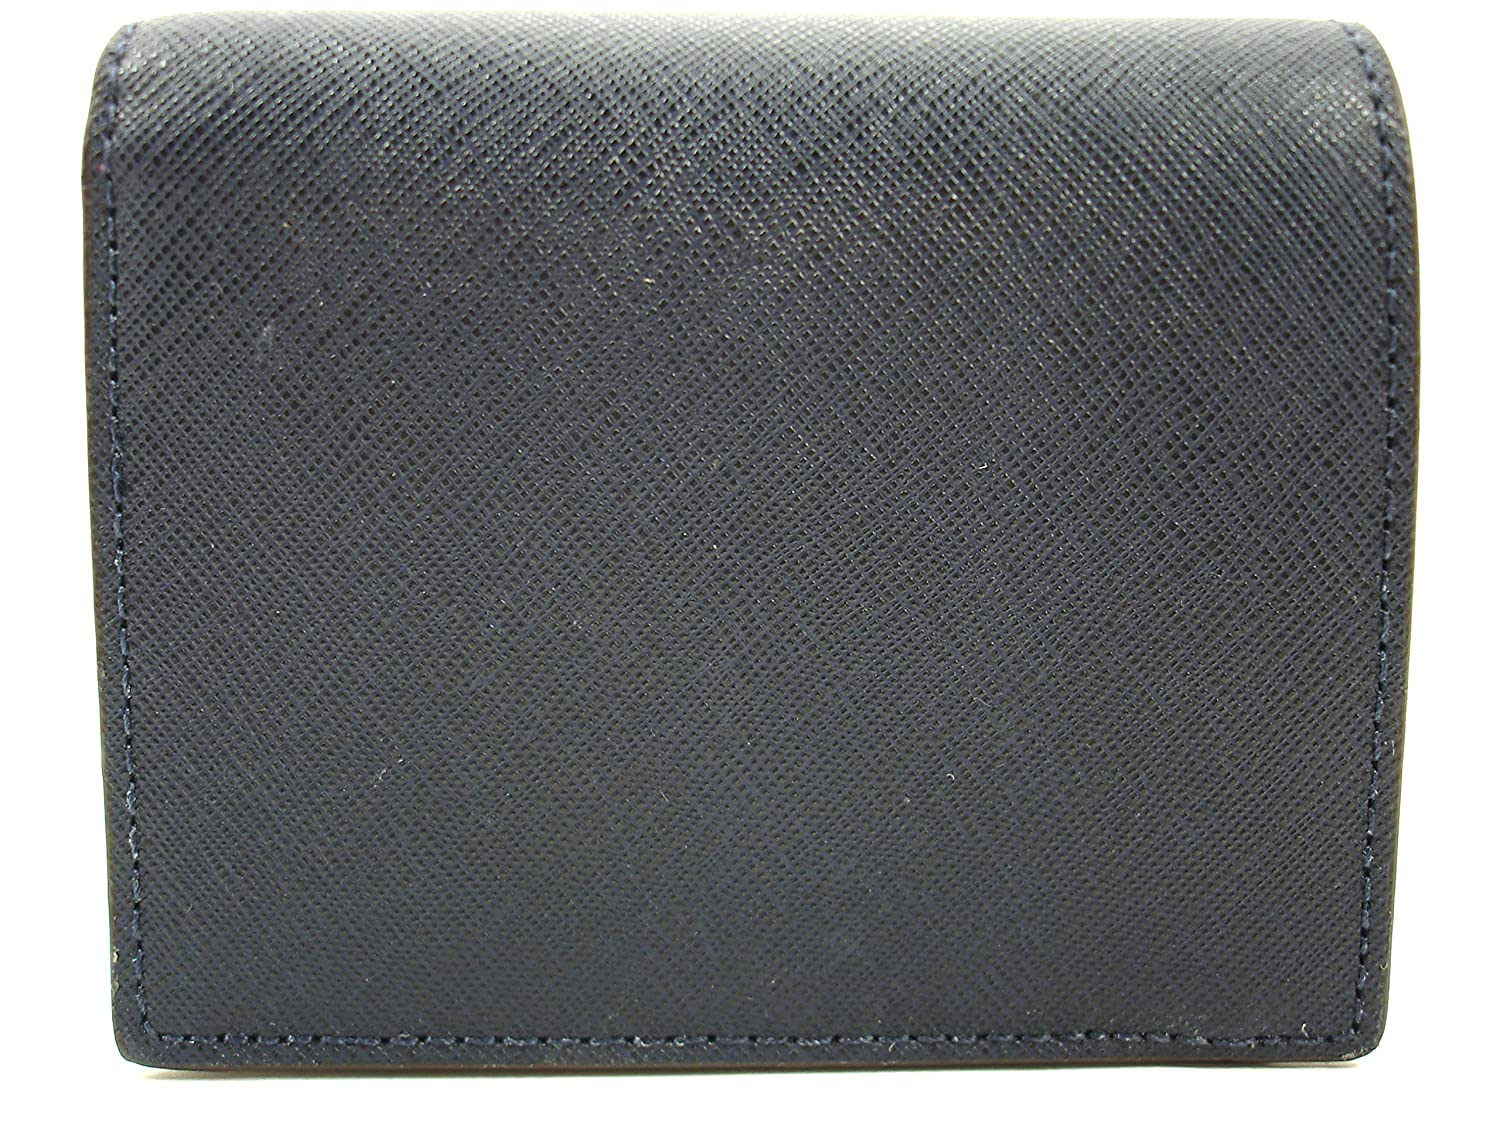 59c036471e9c MICHAEL Michael Kors Jet Set Flap Card Holder Saffiano Leather Navy/Silver:  Amazon.co.uk: Clothing